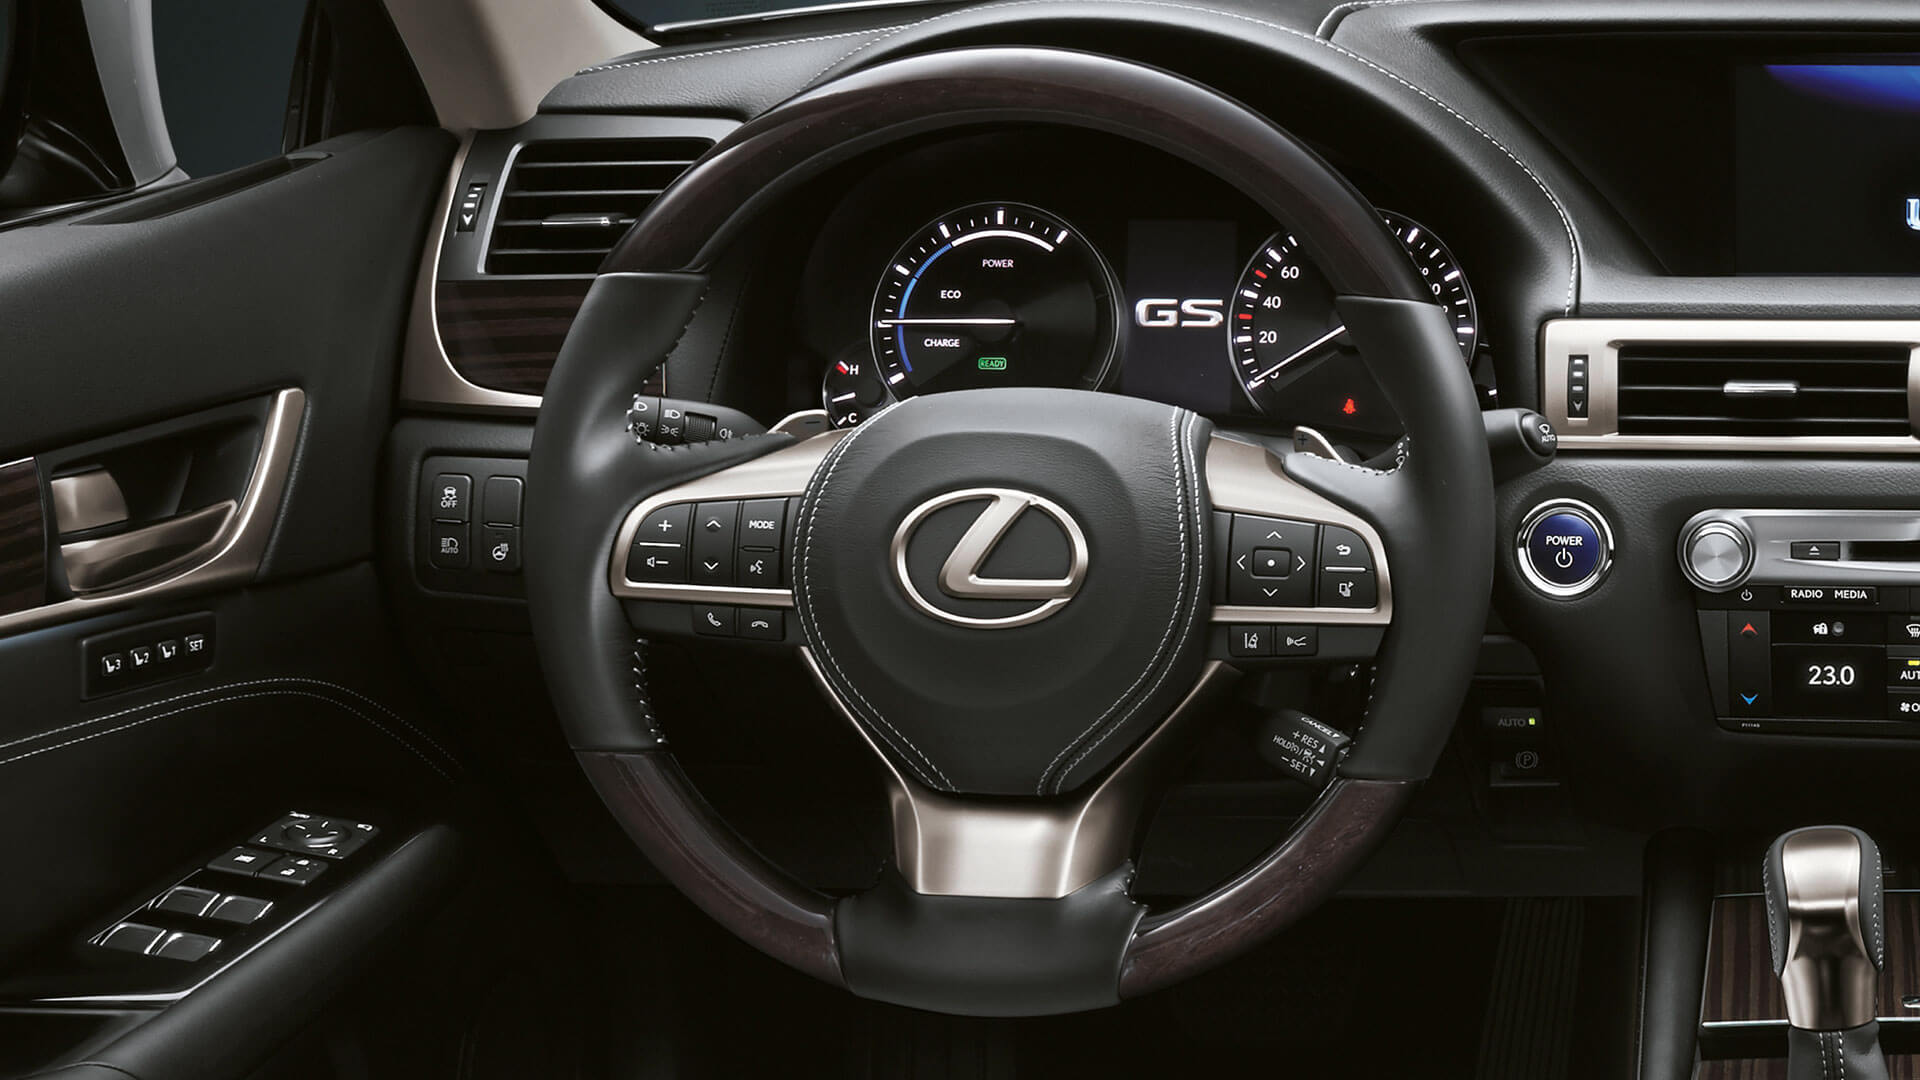 2018 lexus gs features leather steering wheel